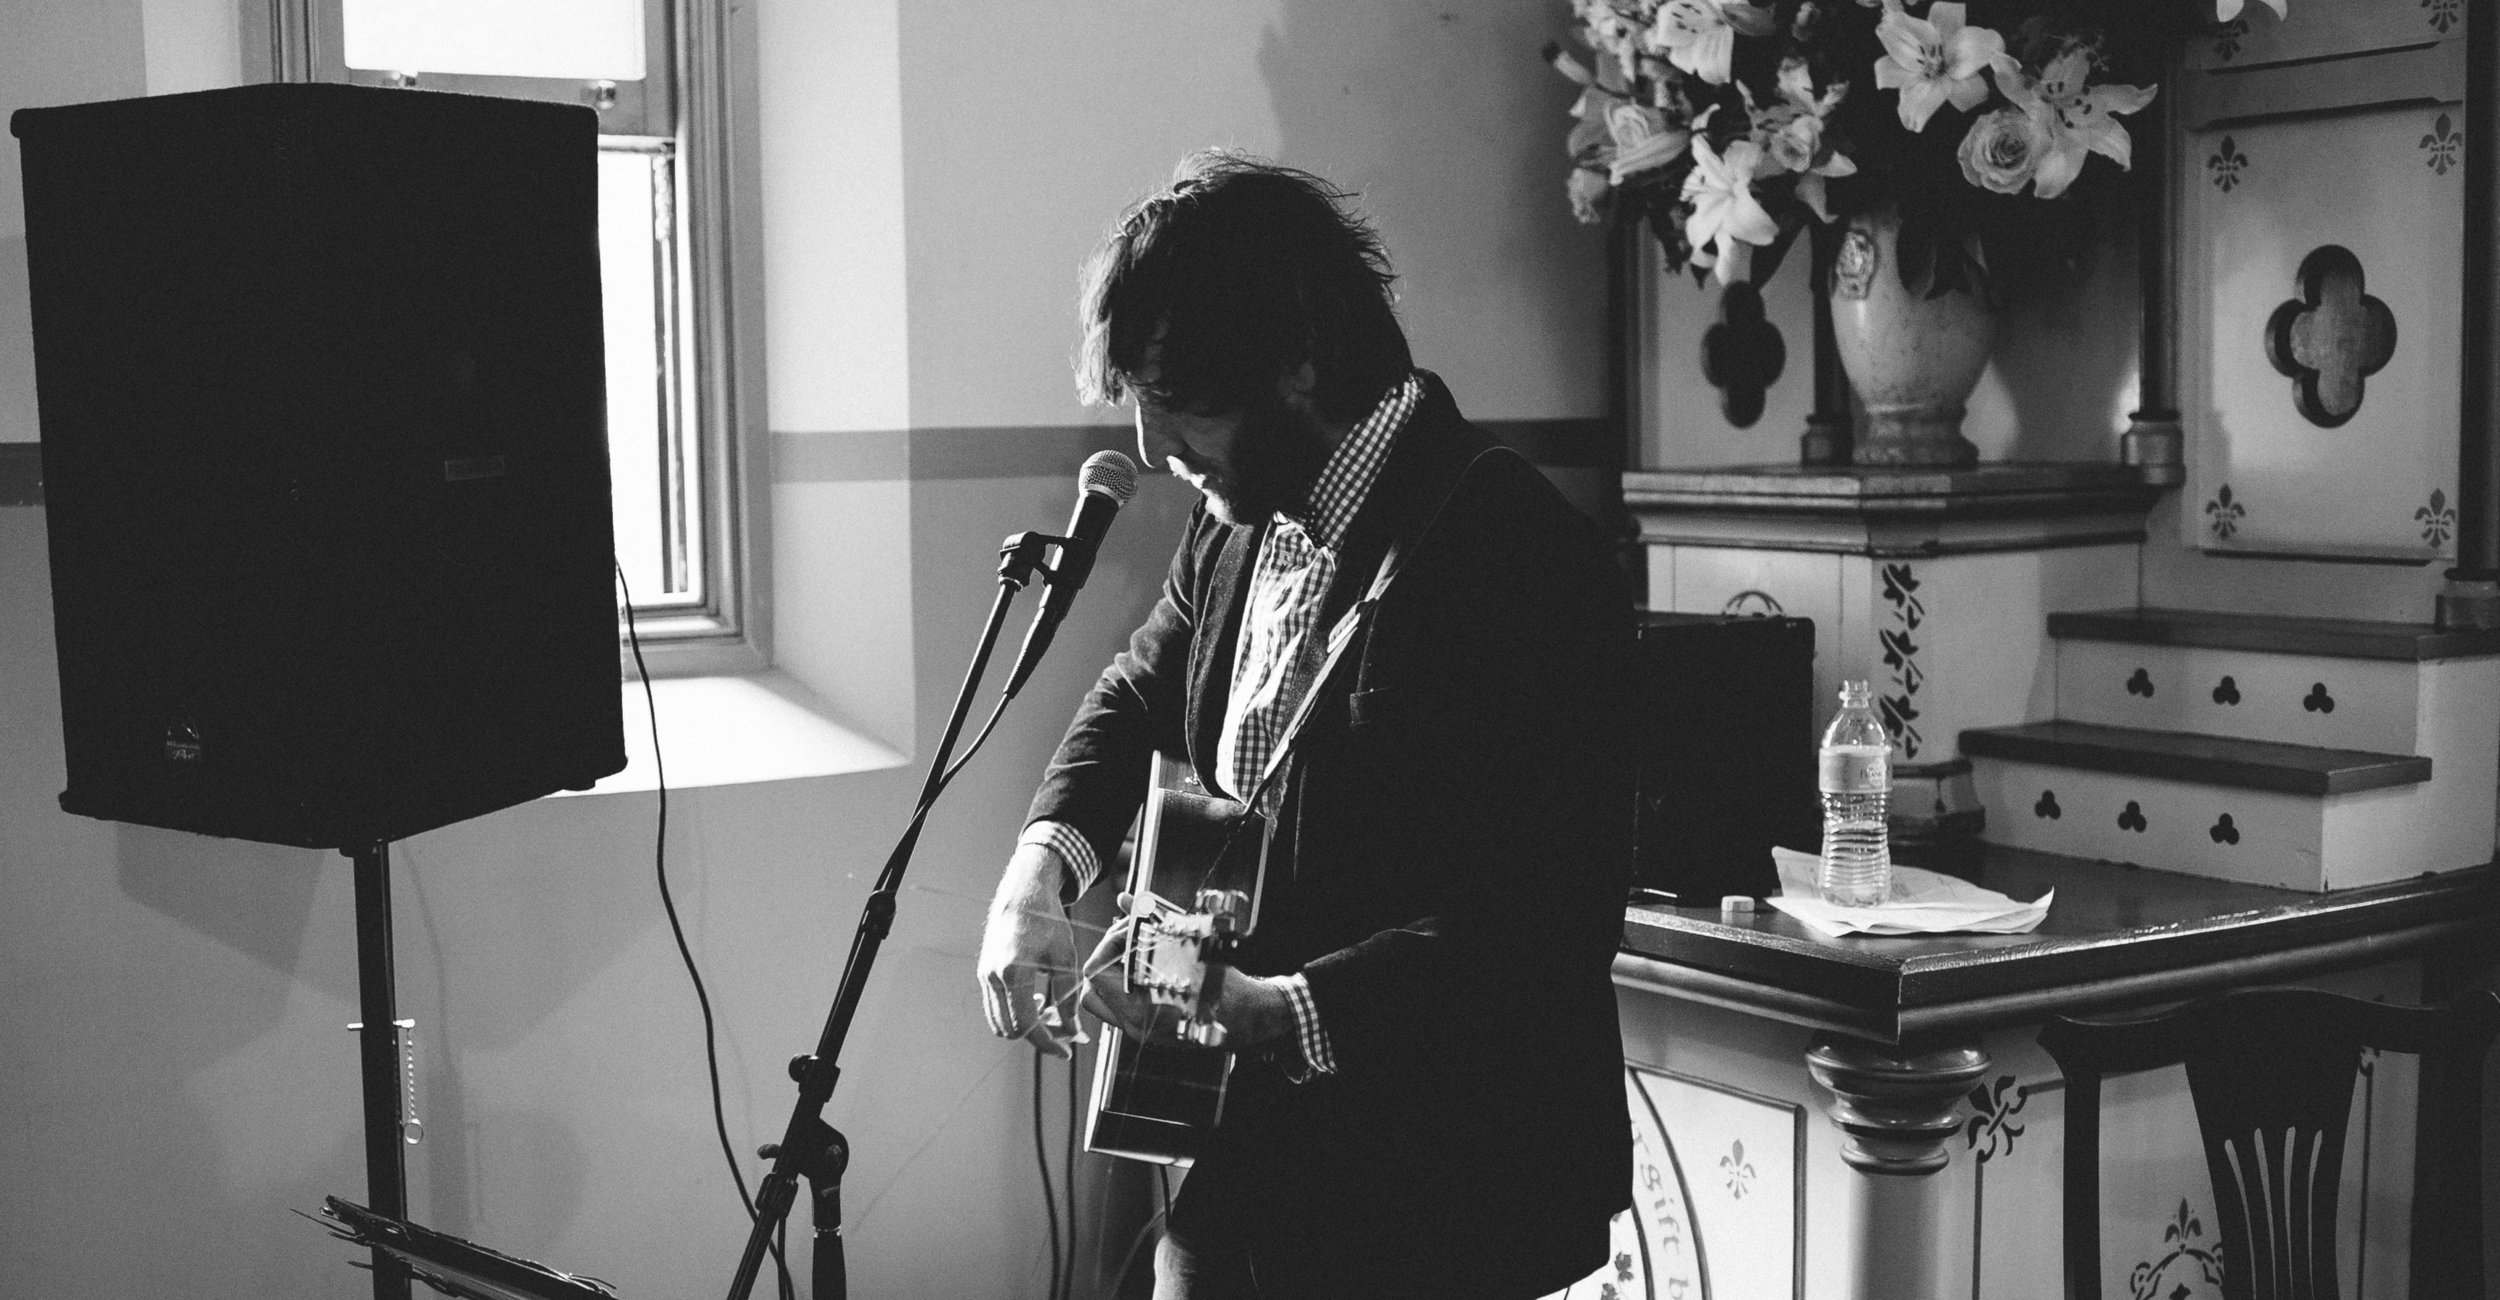 Matt Boylan-Smith performing at the wedding of NRL star Dan Hunt